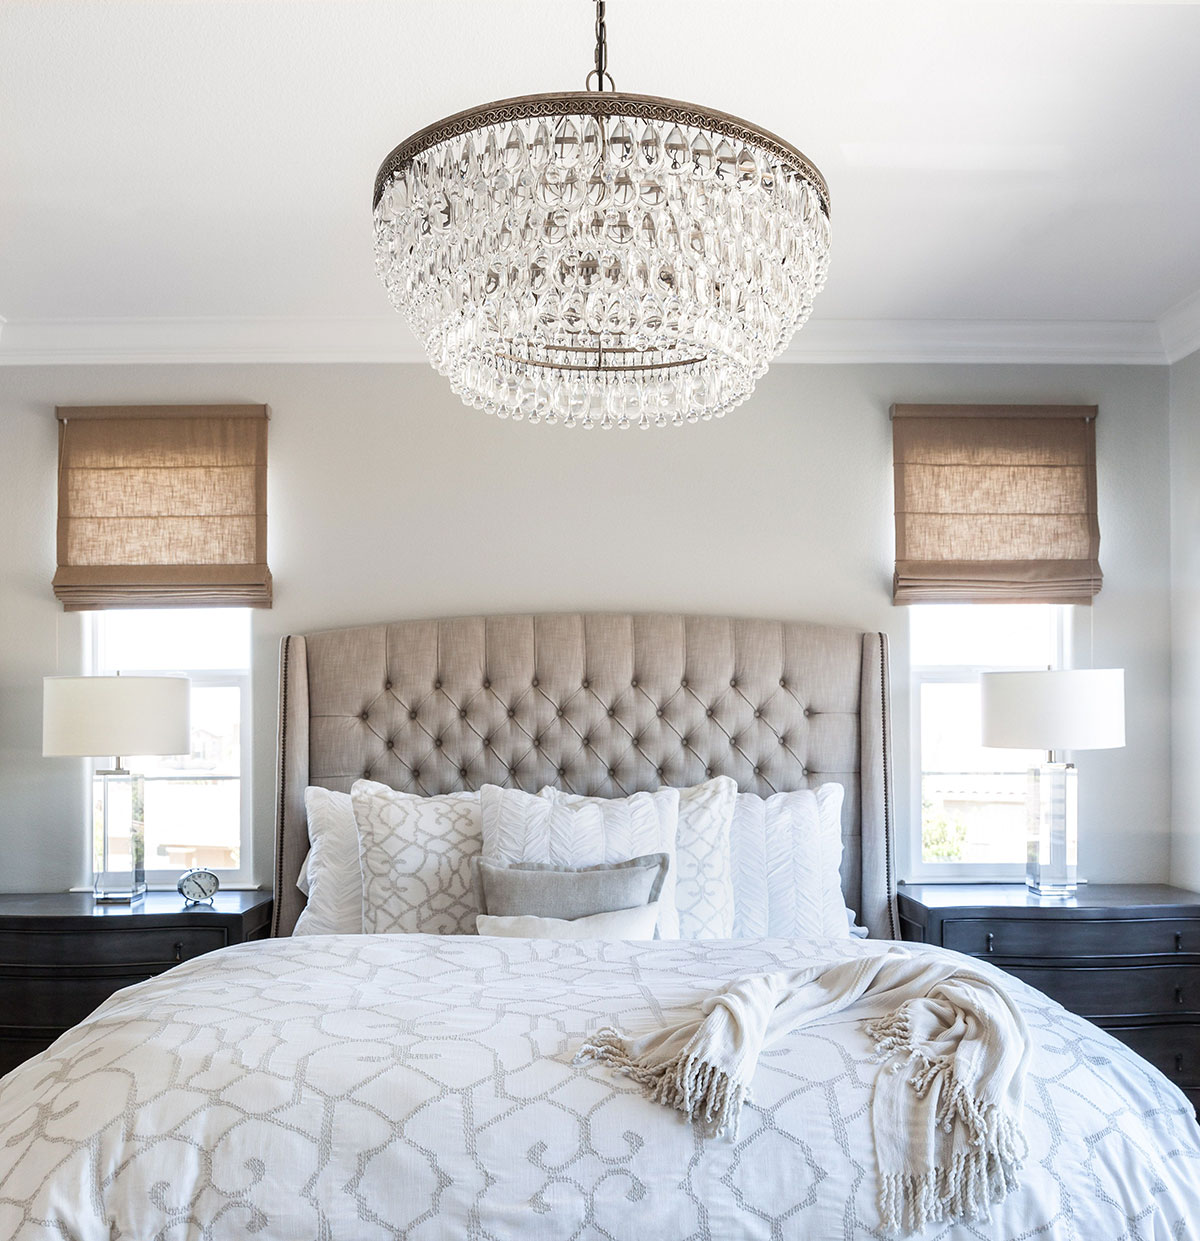 Crystal bedroom chandelier